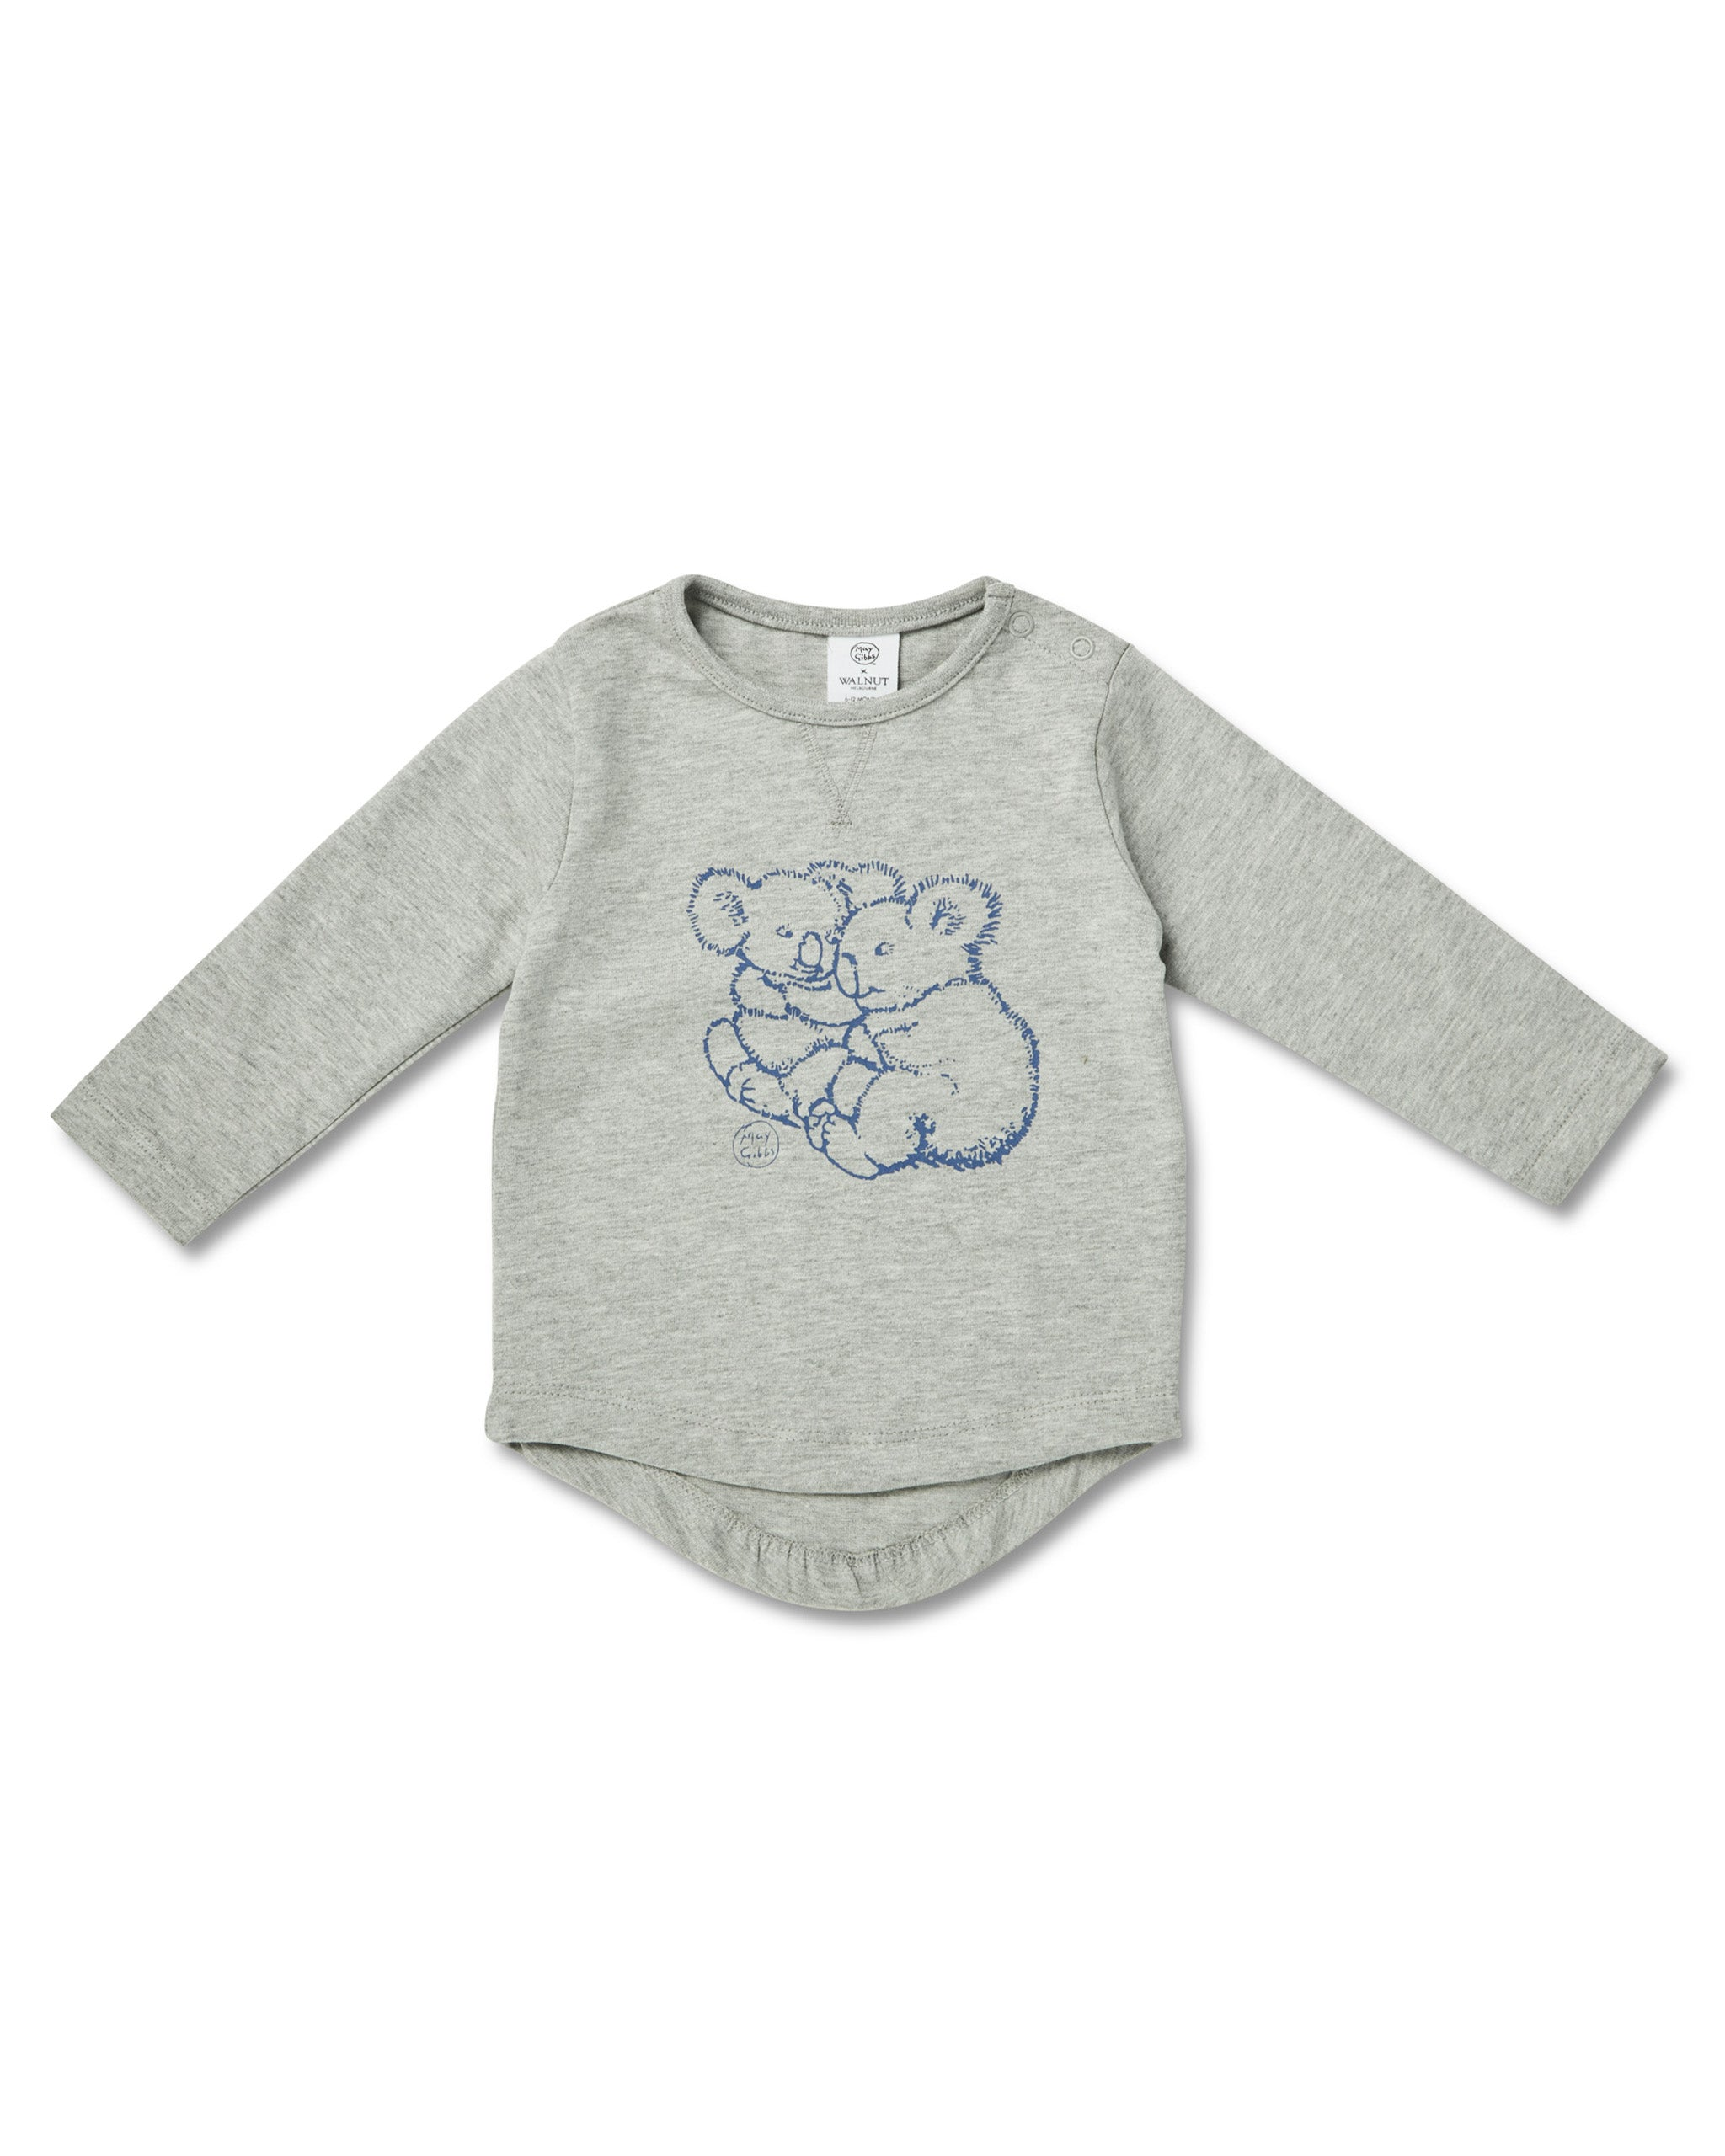 May Gibbs Leo Long Sleeve Tee - Koala Cuddles